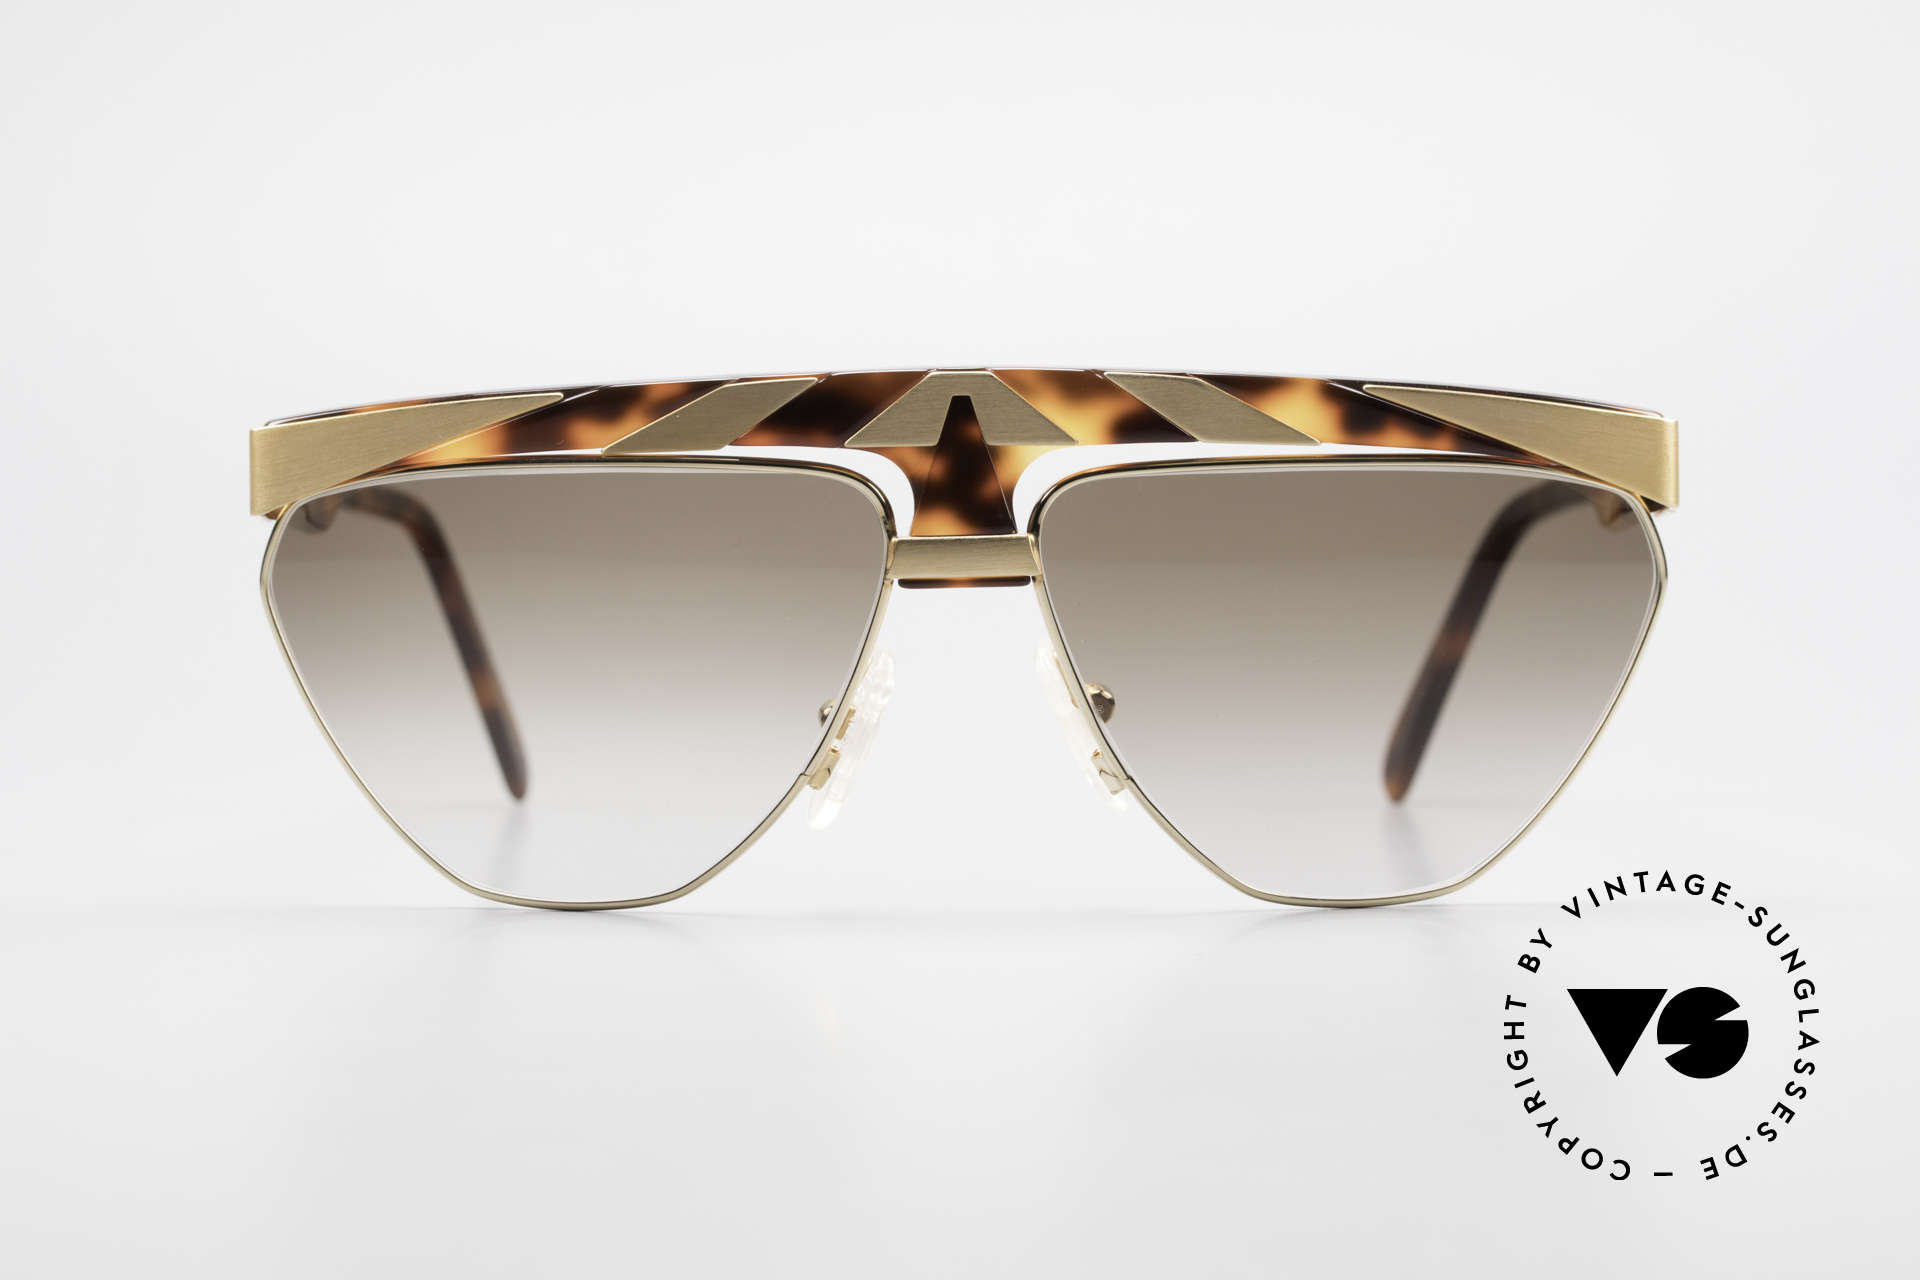 Alpina G84 80's Sunglasses Gold Plated, conspicuous frame design with ornamenting details, Made for Men and Women